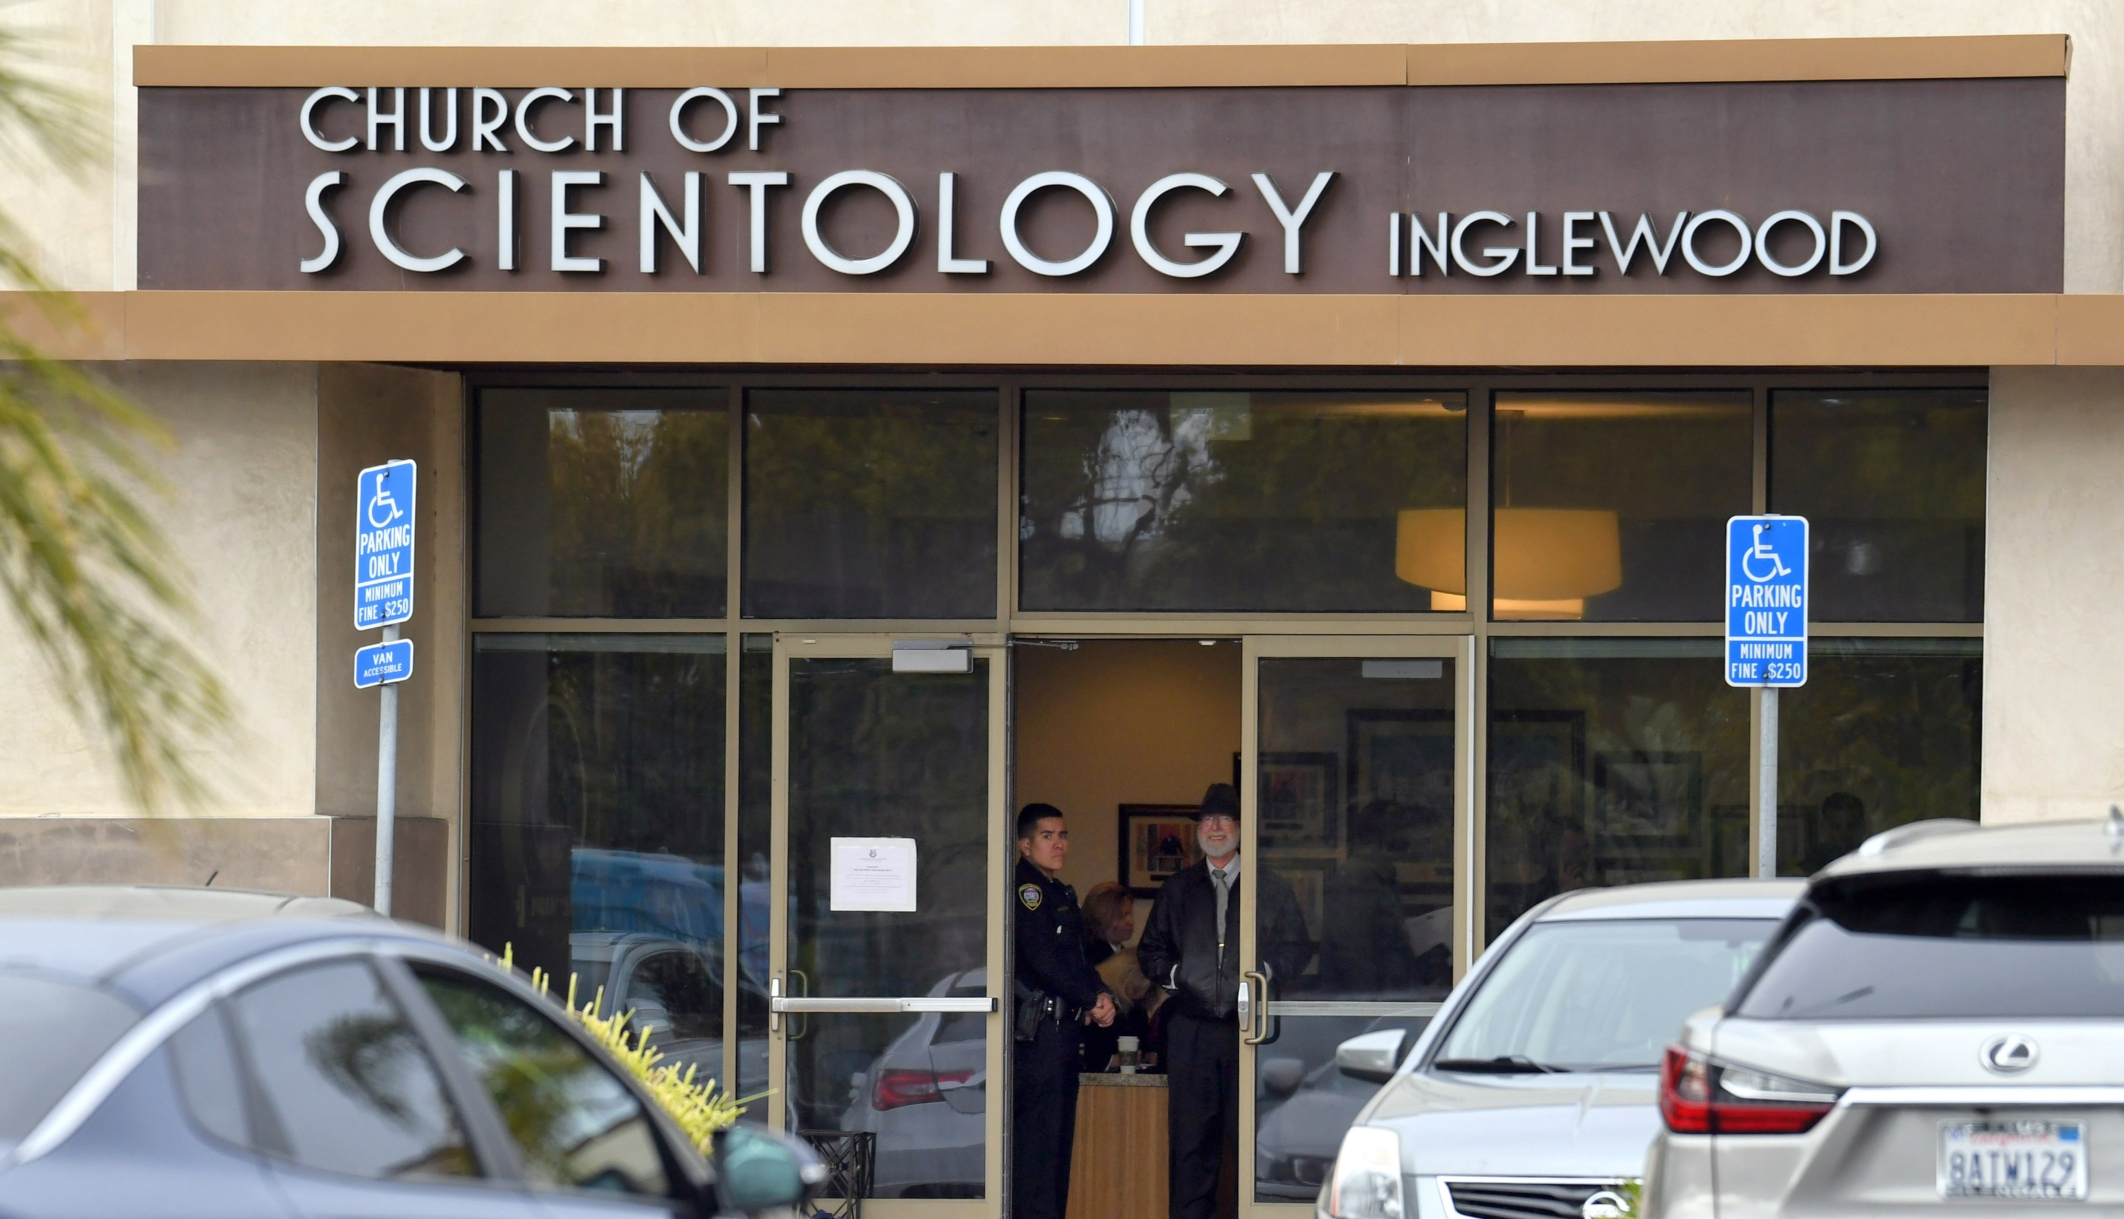 Police pictured outside a Church of Scientology in Inglewood, California in March 2019